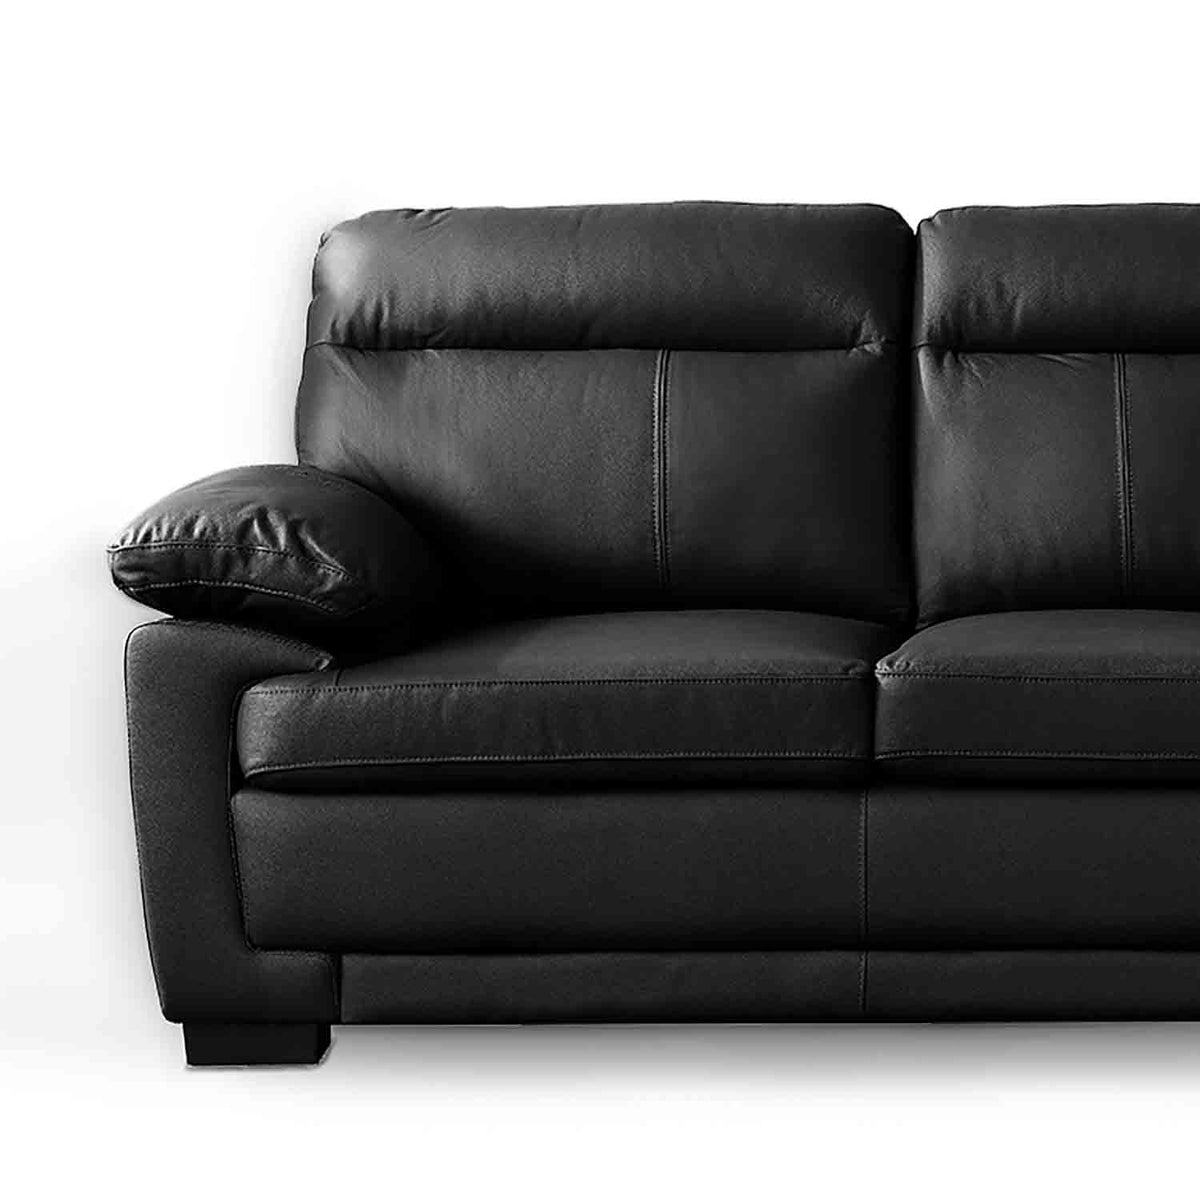 Hugo Black 3 Seater Leather Sofa - Close up